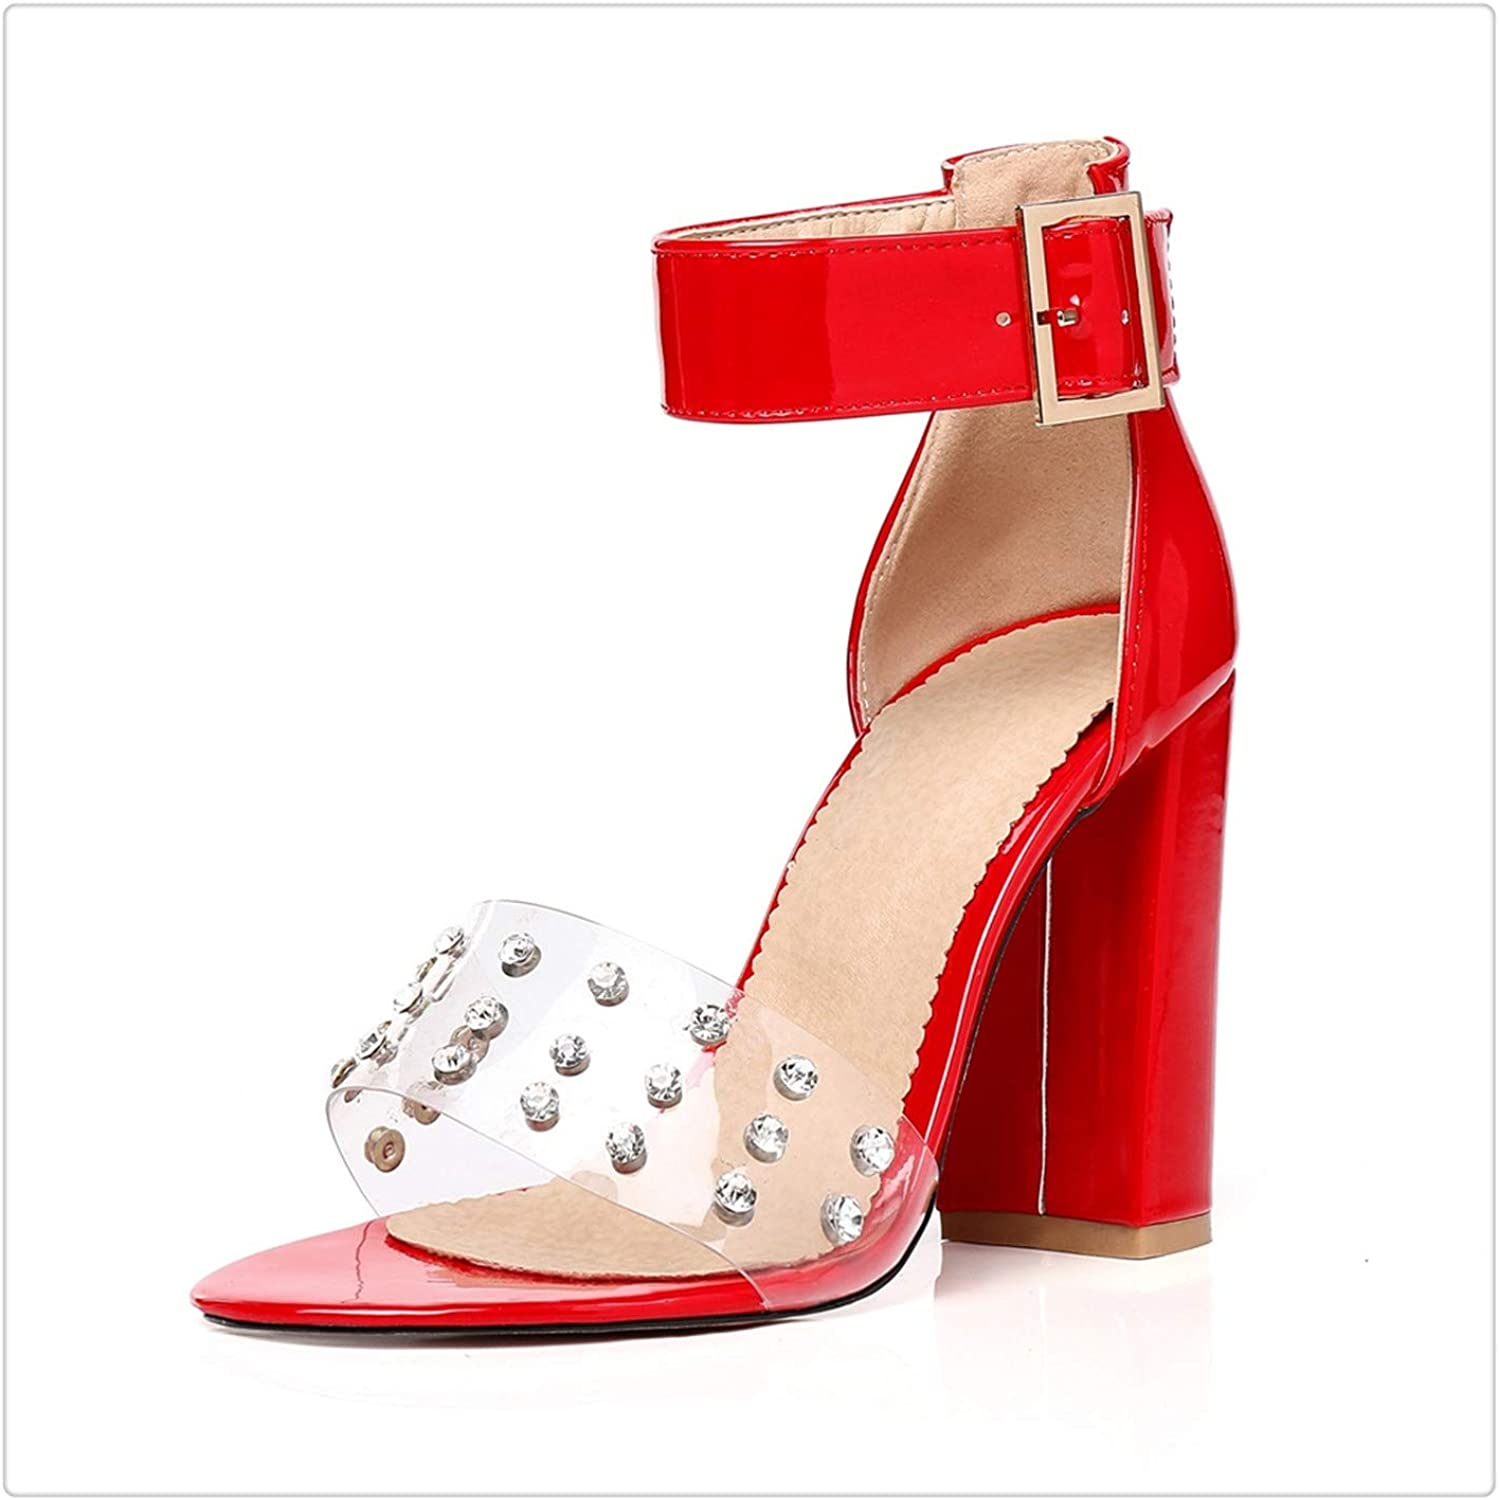 ZXCVB& Fashion Buckle 10cmHigh Heels Sandals Women Sexy Summer shoes